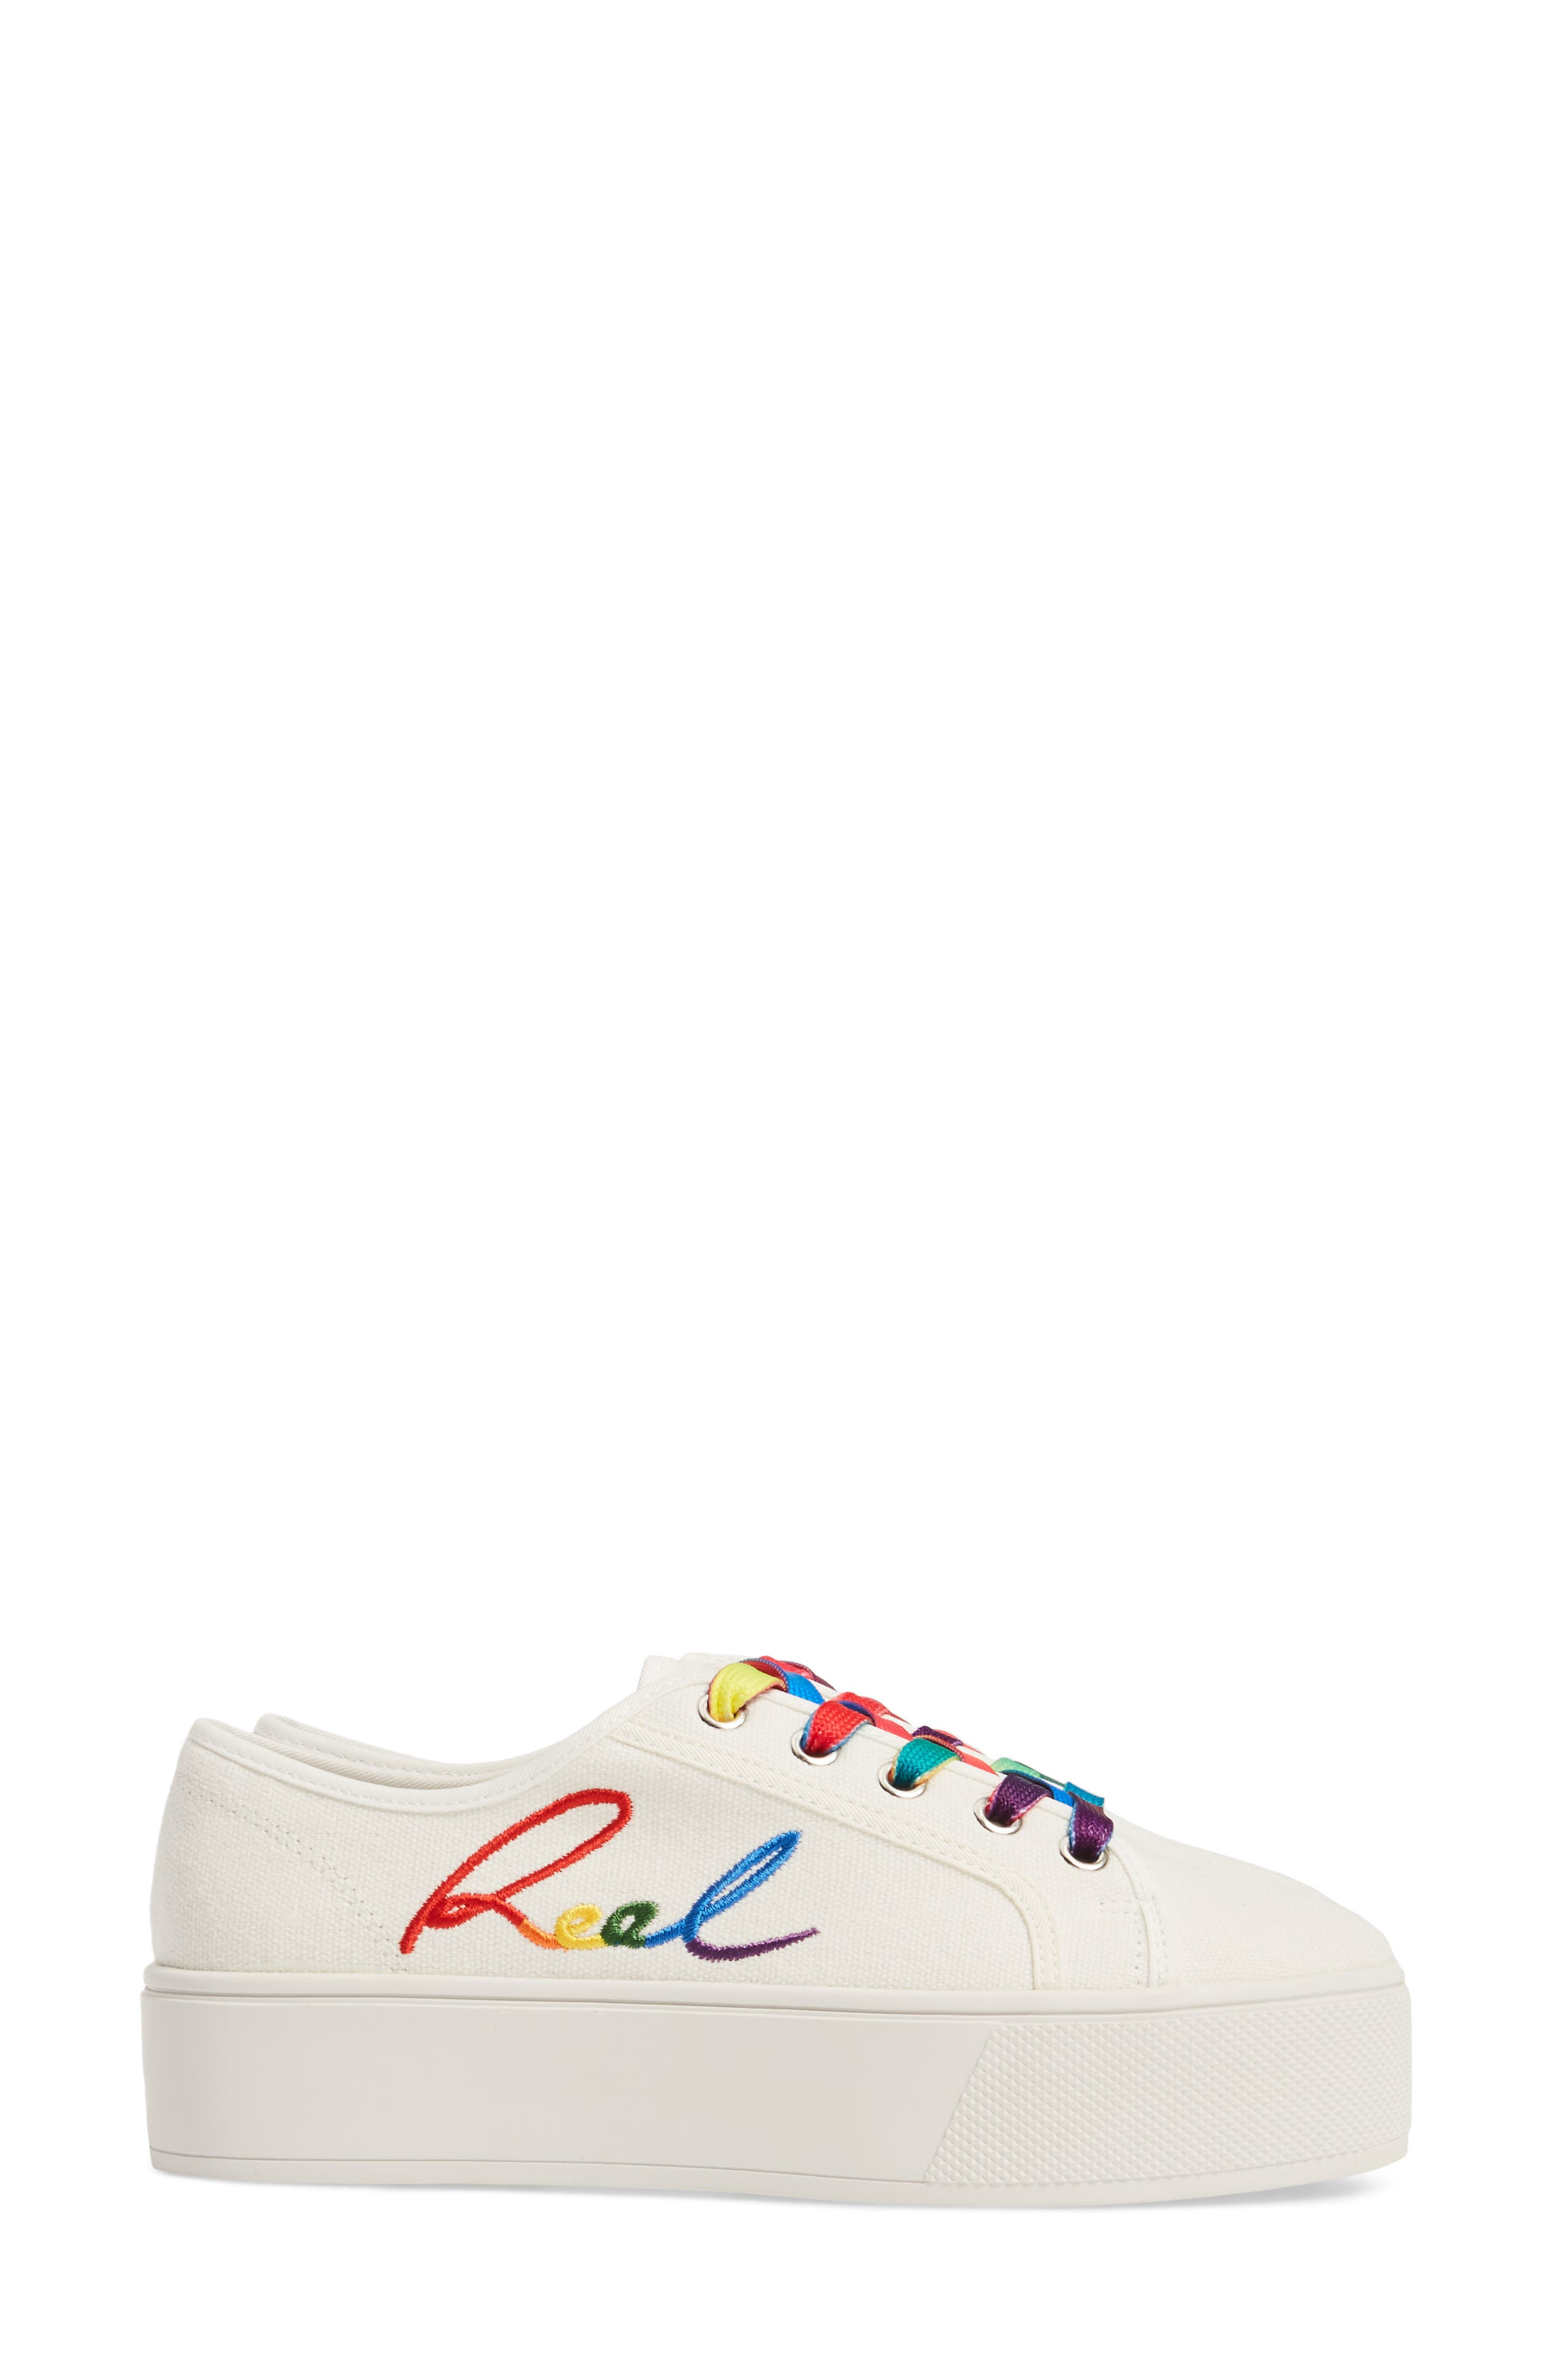 Fink Platform Sneaker,                             Alternate thumbnail 6, color,